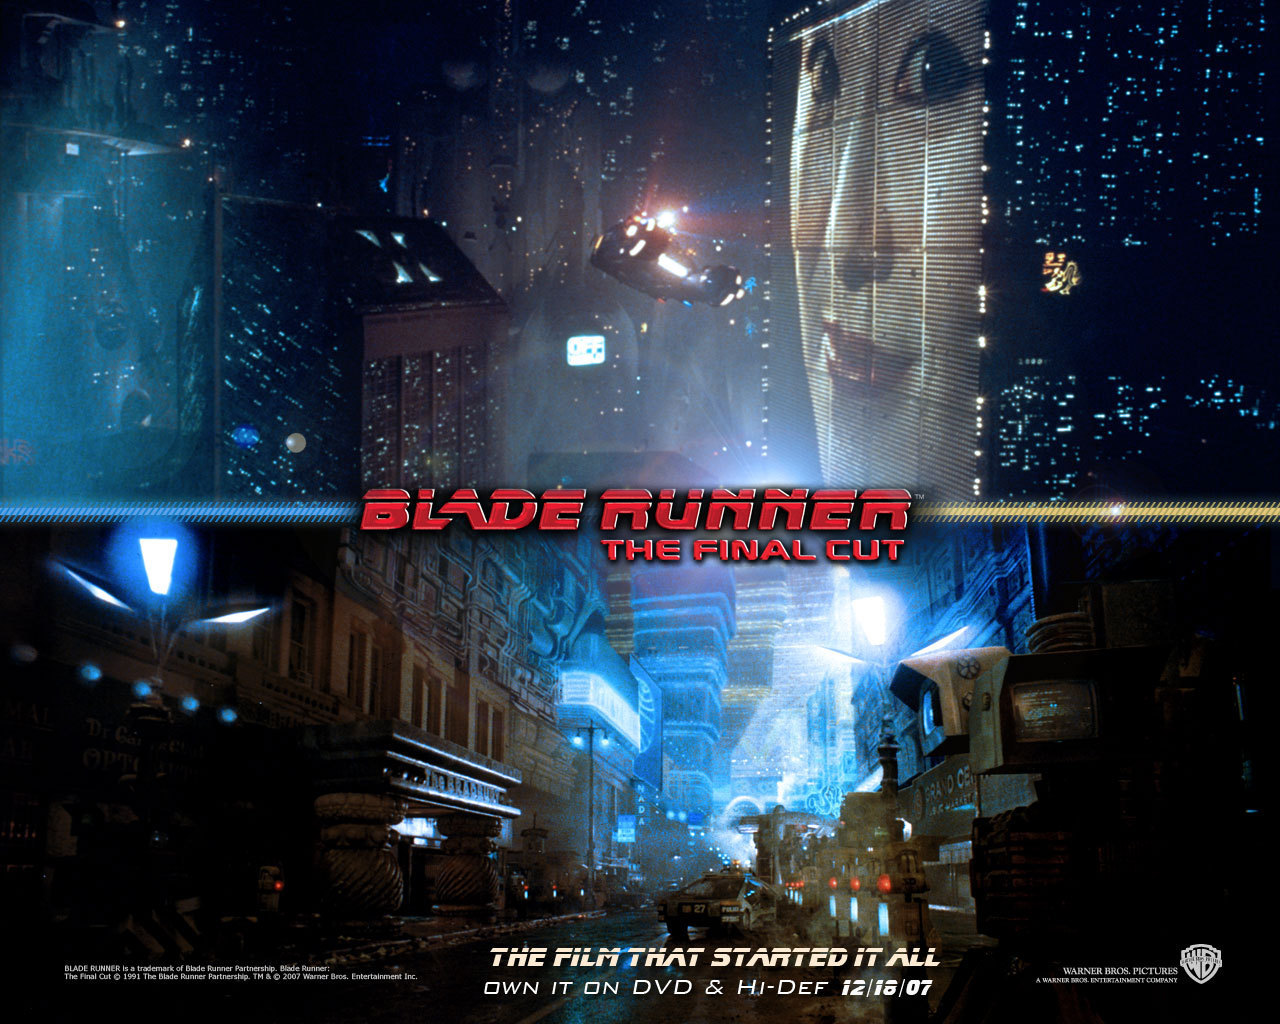 Official Blade Runner Wallpaper   Blade Runner Wallpaper 8207469 1280x1024